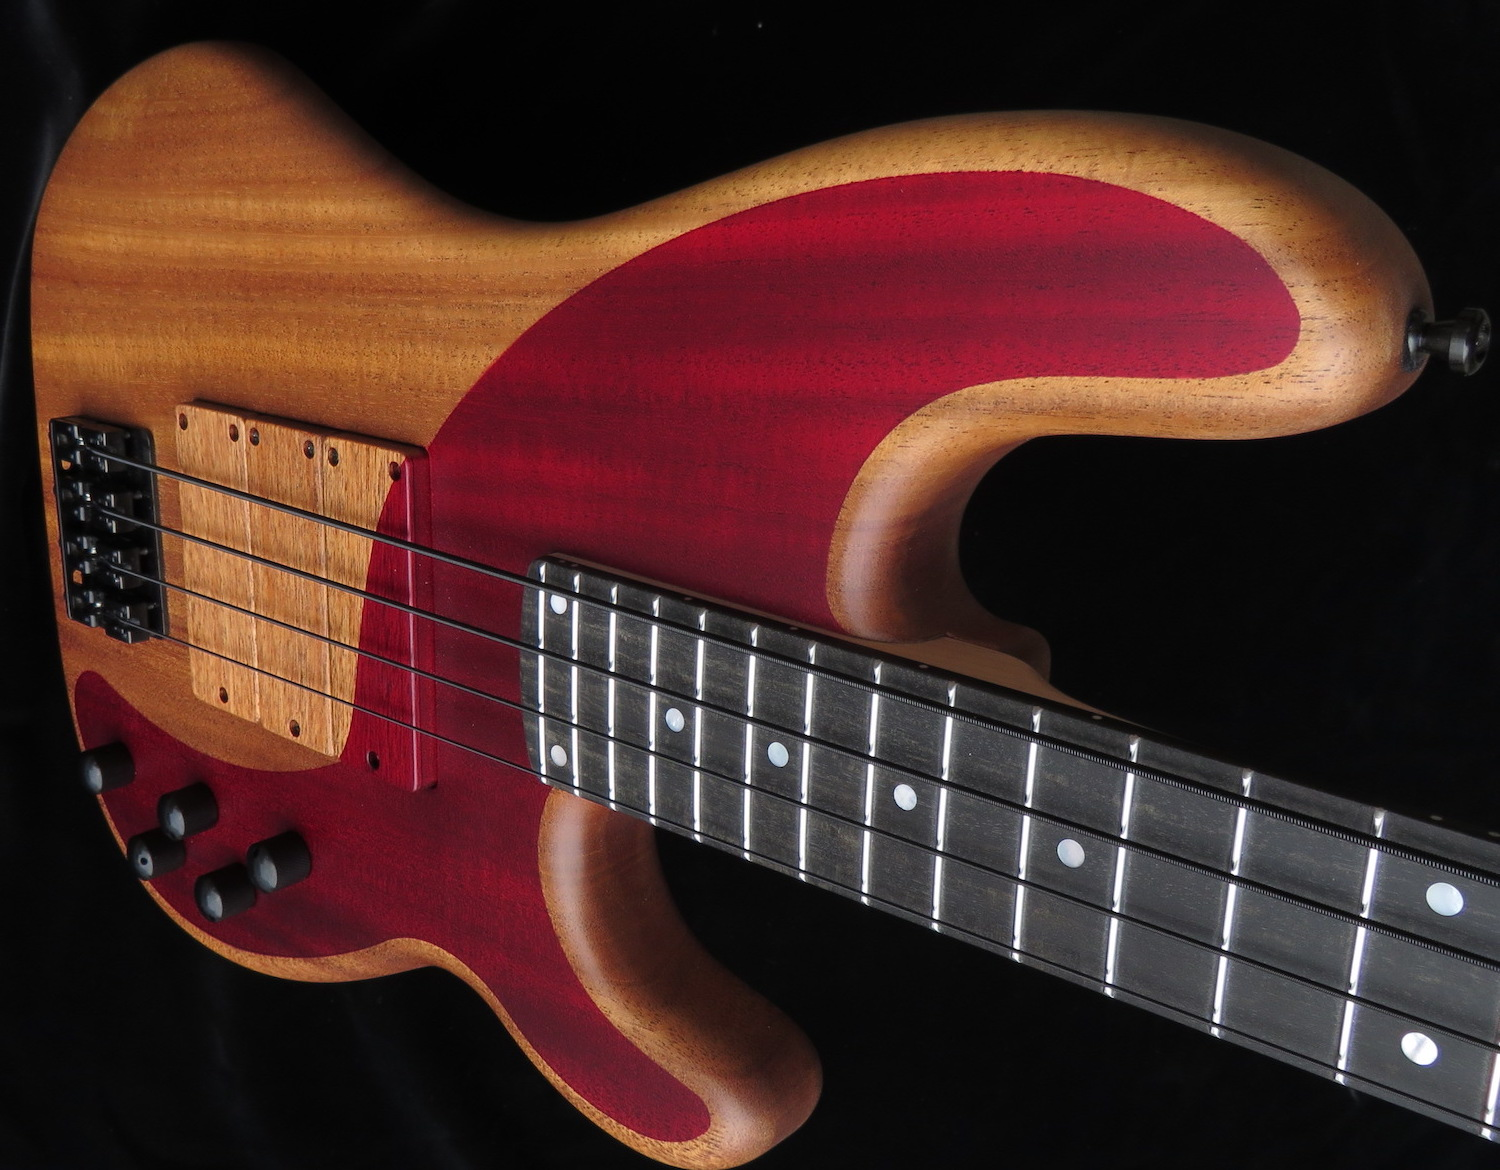 HOT WIRE CUSTOM SHOP - This is where bassist dreams come true! We can build your personal wish bass! Everything is possible: Fix the body shape, the neck dimensions, the scale length, the woods to use, the paintwork, hardware, pickups and electronics - everythingll!